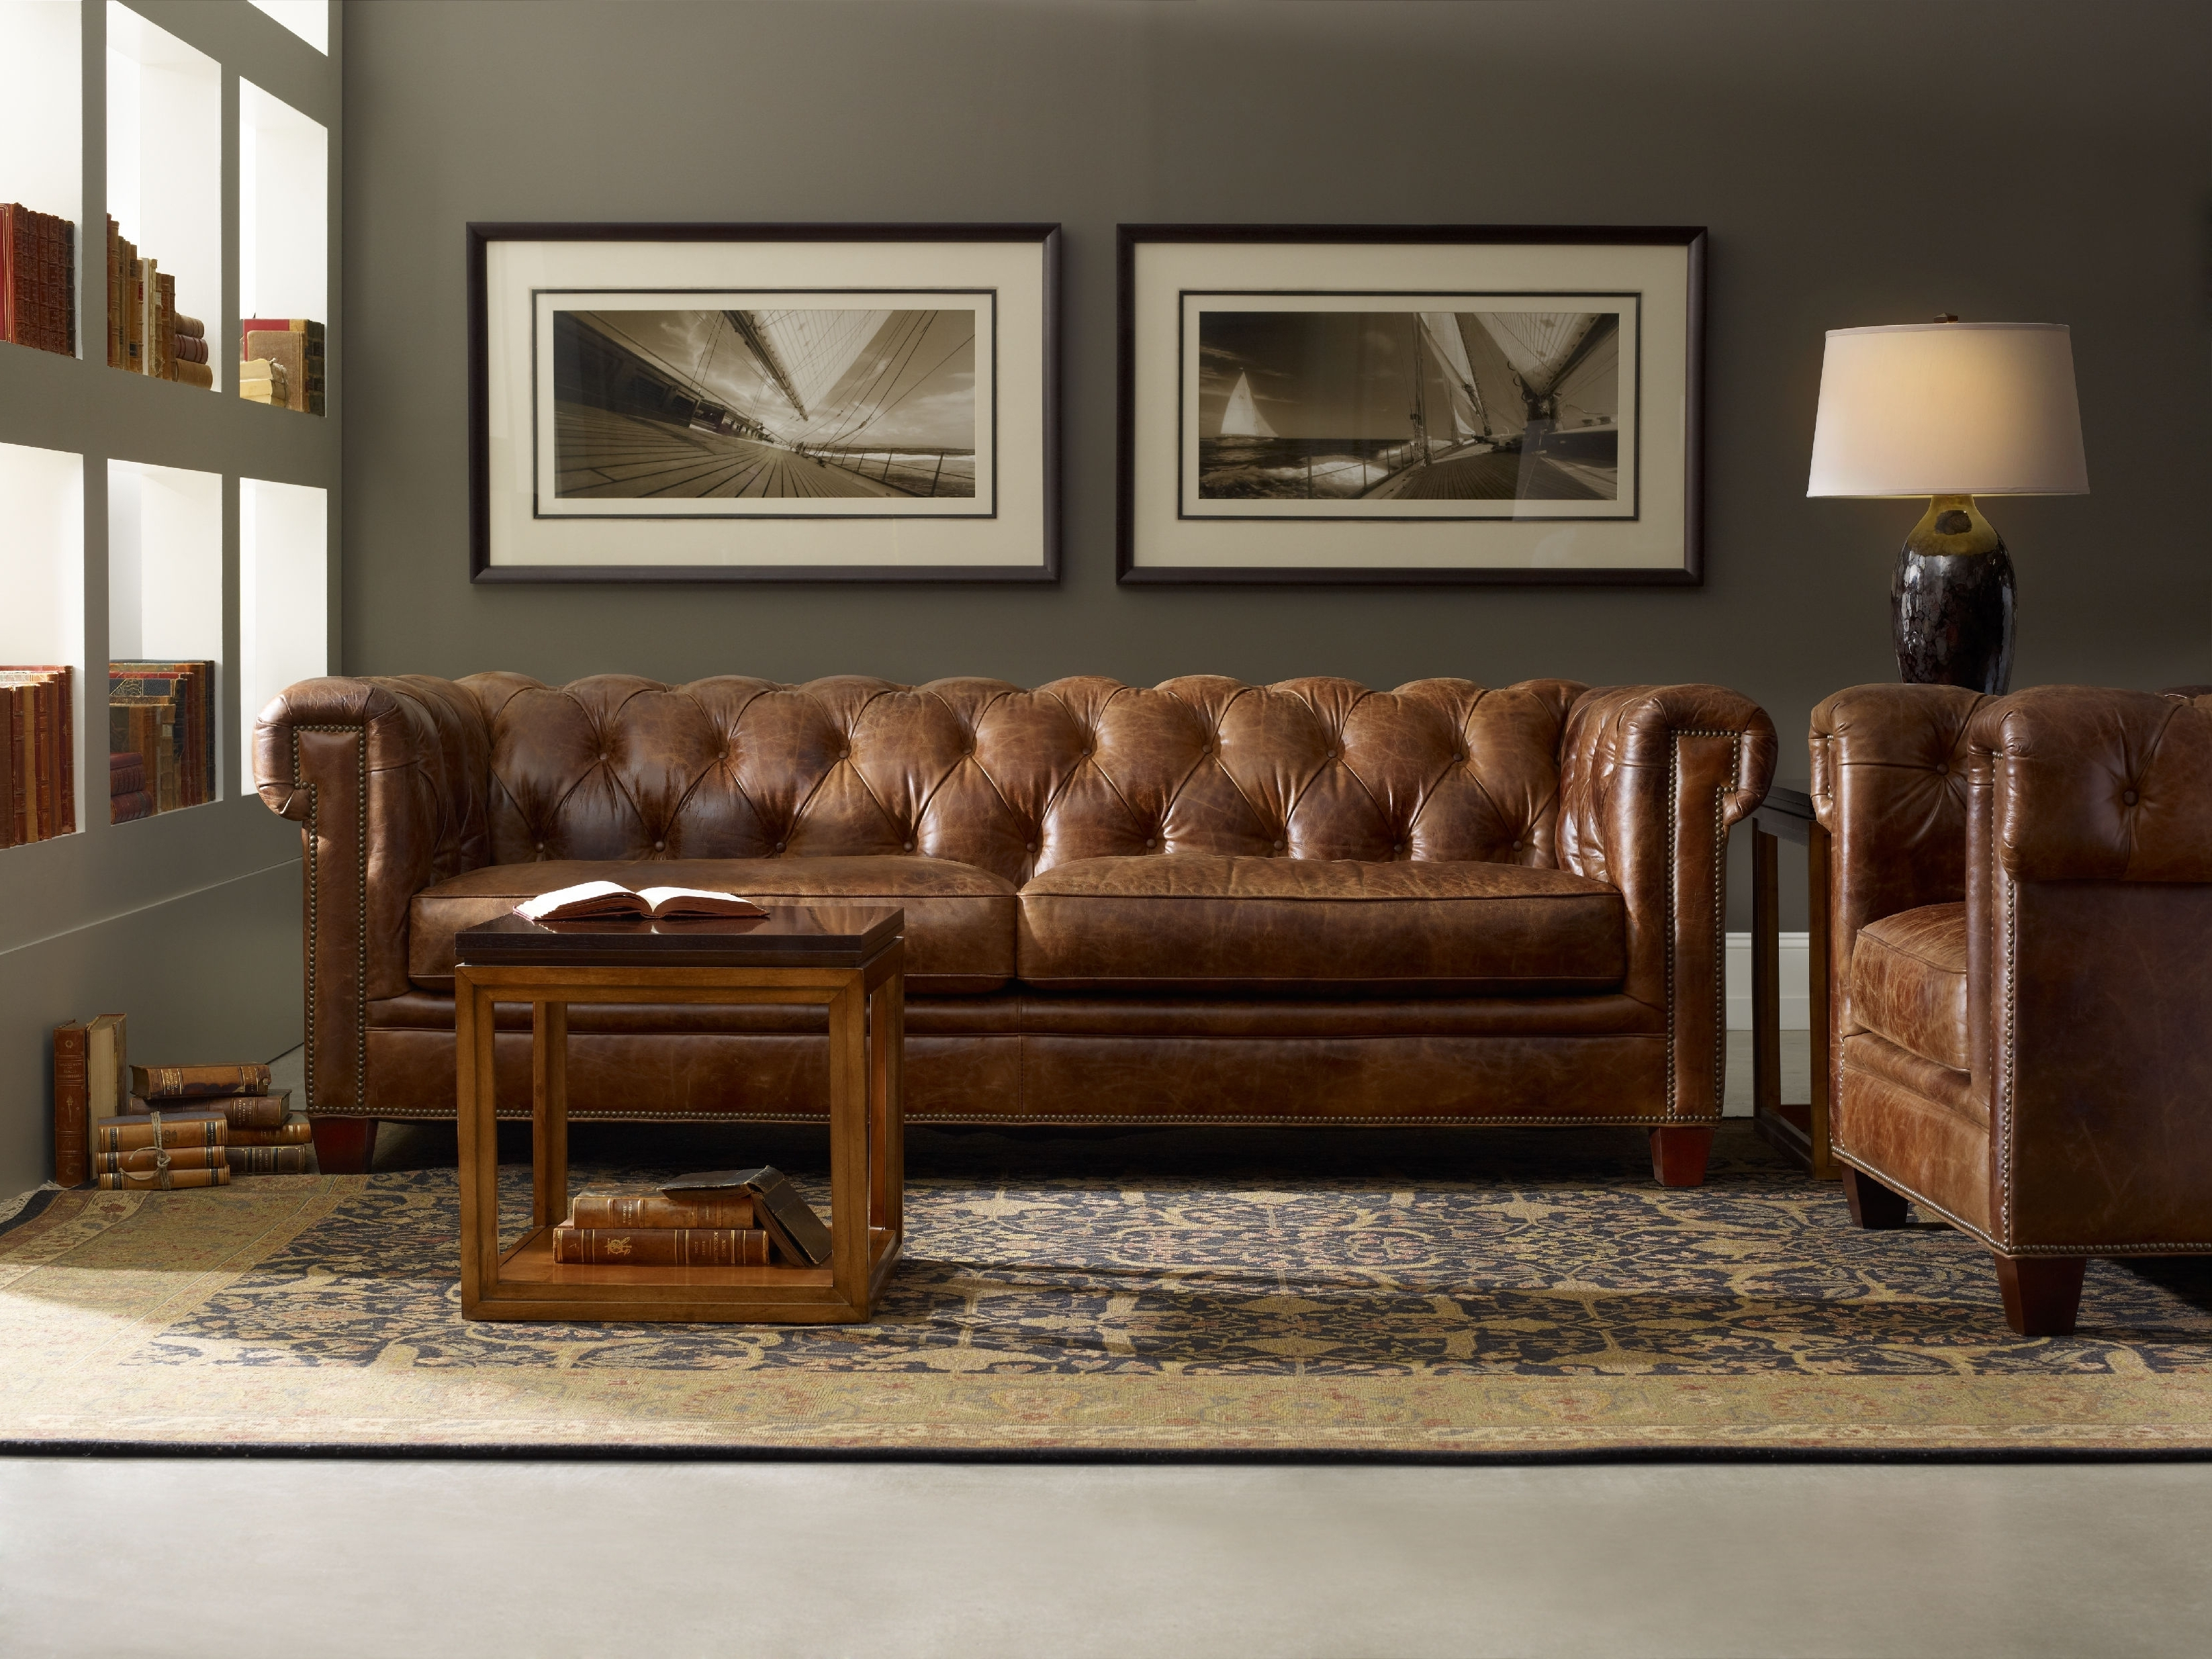 Sofas : Pottery Barn Chesterfield Sofa Pottery Barn Couches Pertaining To Most Popular Pottery Barn Sectional Sofas (View 19 of 20)